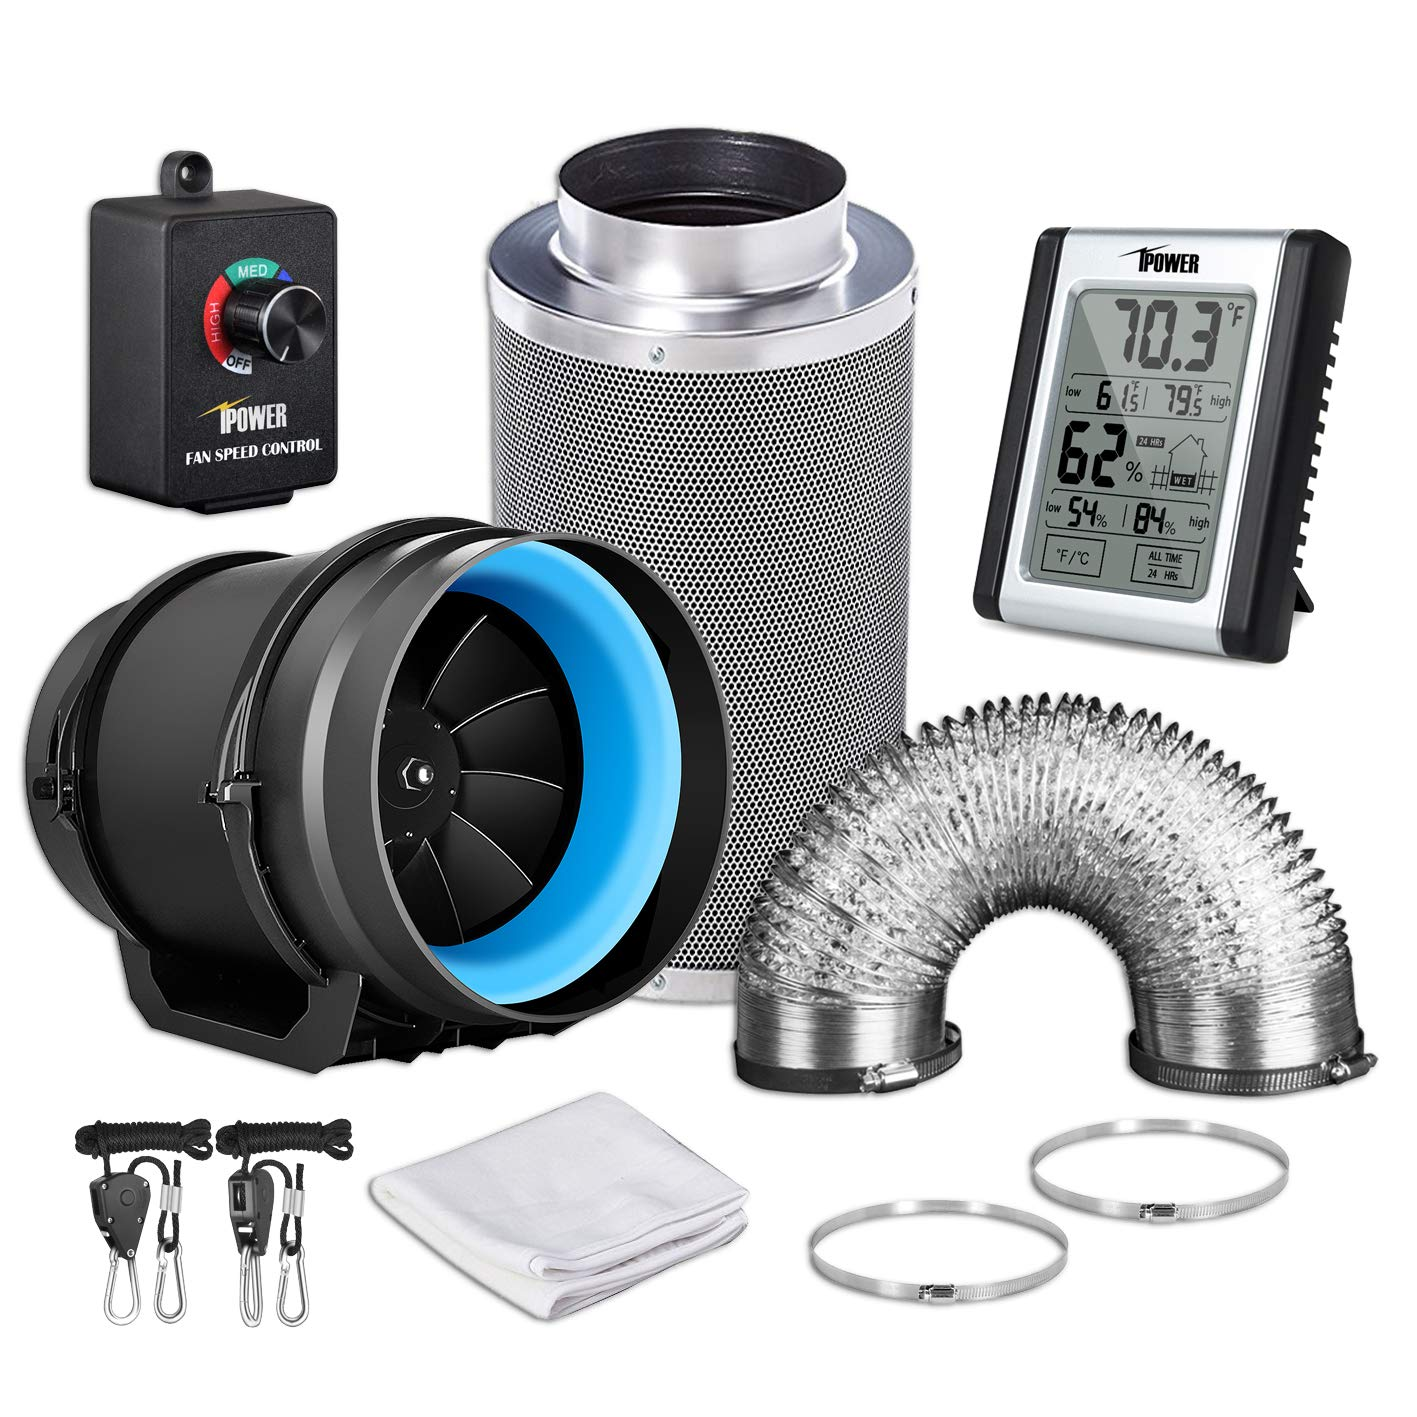 Kits Black iPower GLFANXEXPSET8D25CHUMD 8 Inch 550 CFM Inline Carbon Filter 25 Feet Ducting with Fan Speed Controller and Temperature Humidity Monitor and Grow Tent Ventilation